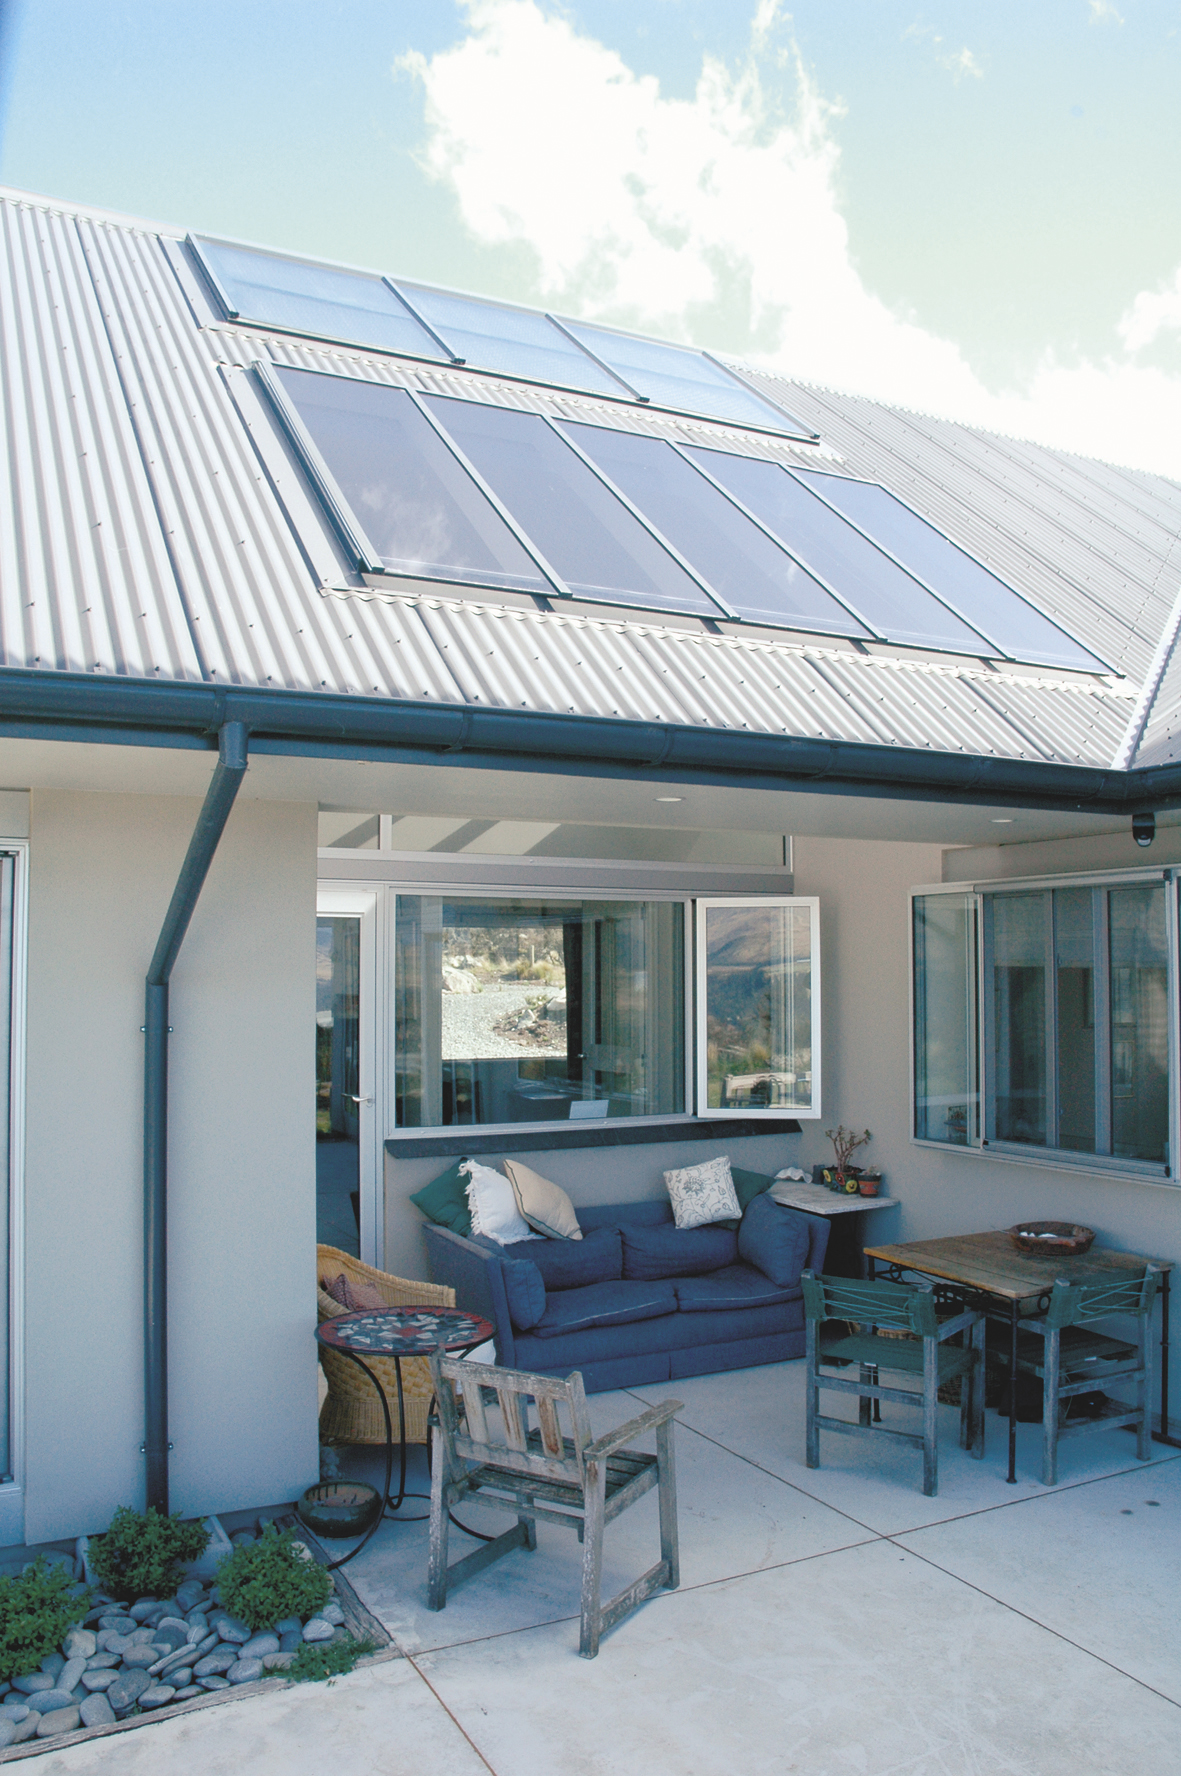 ArtLine Solar hot water System